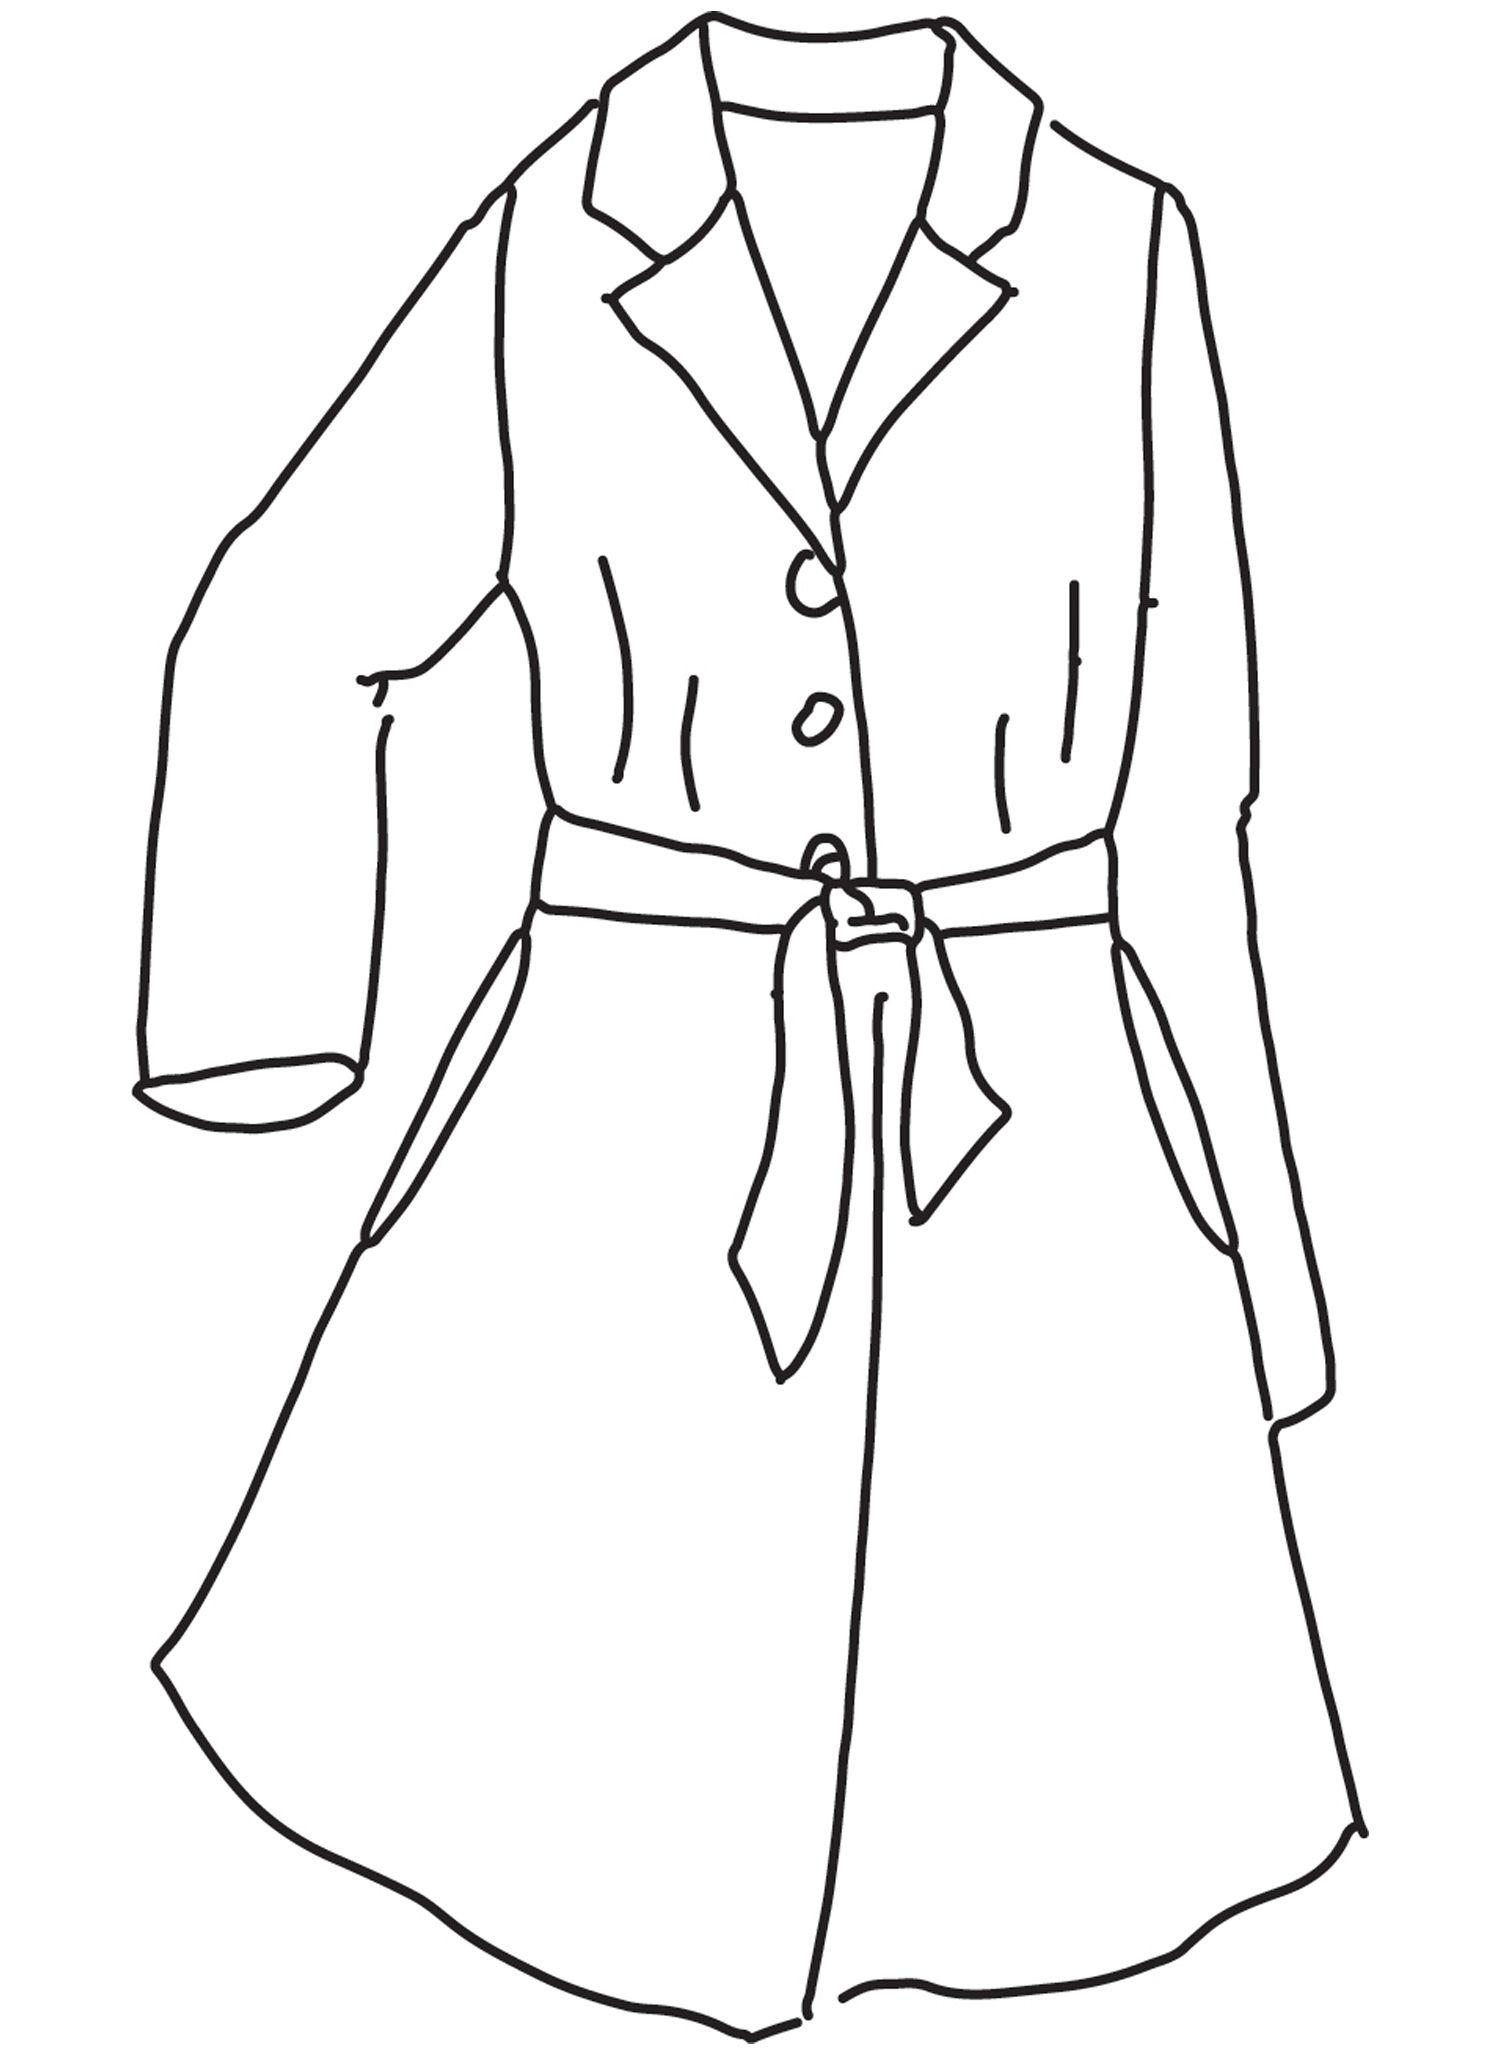 Favorite Jacket sketch image